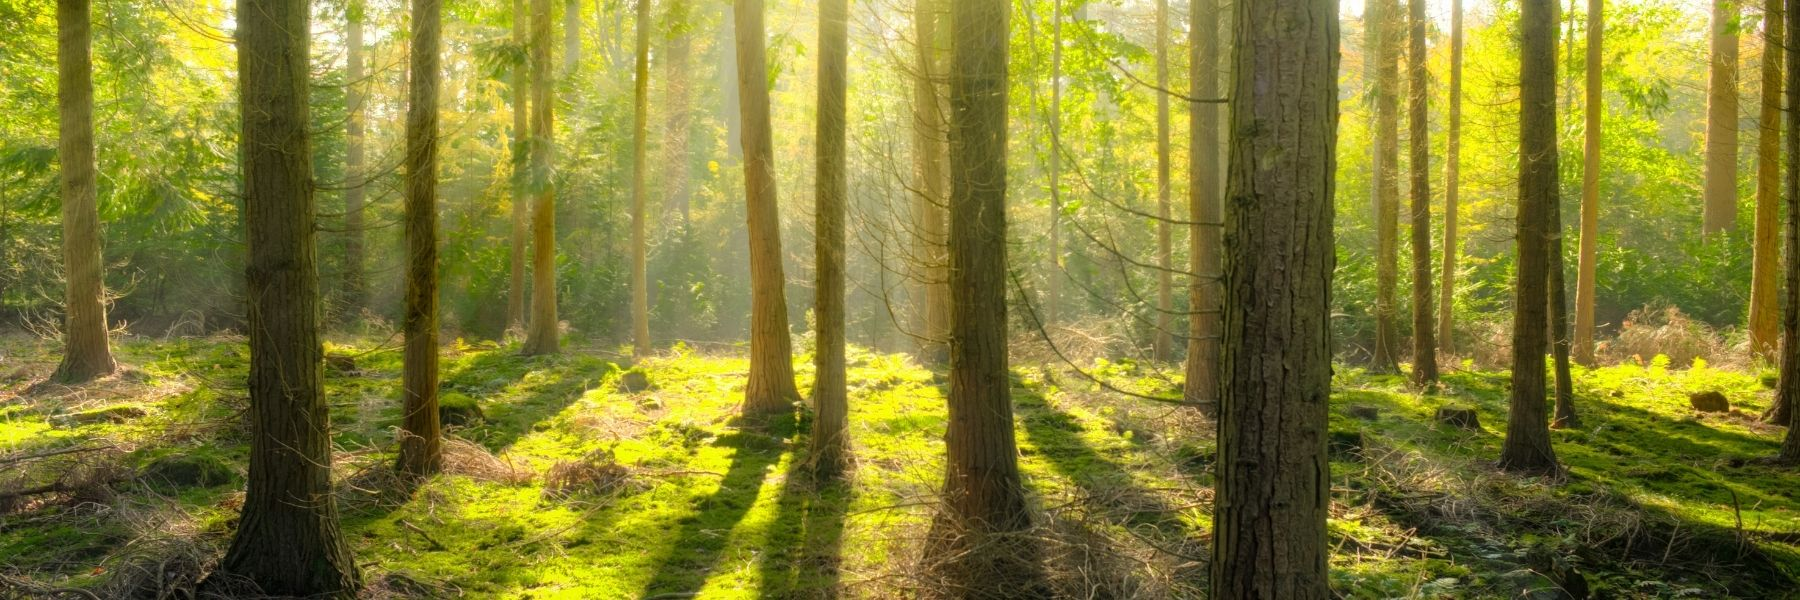 Forest with sunlight shining through trees for the Forest Bathing blog by Wild Planet Aromatherapy